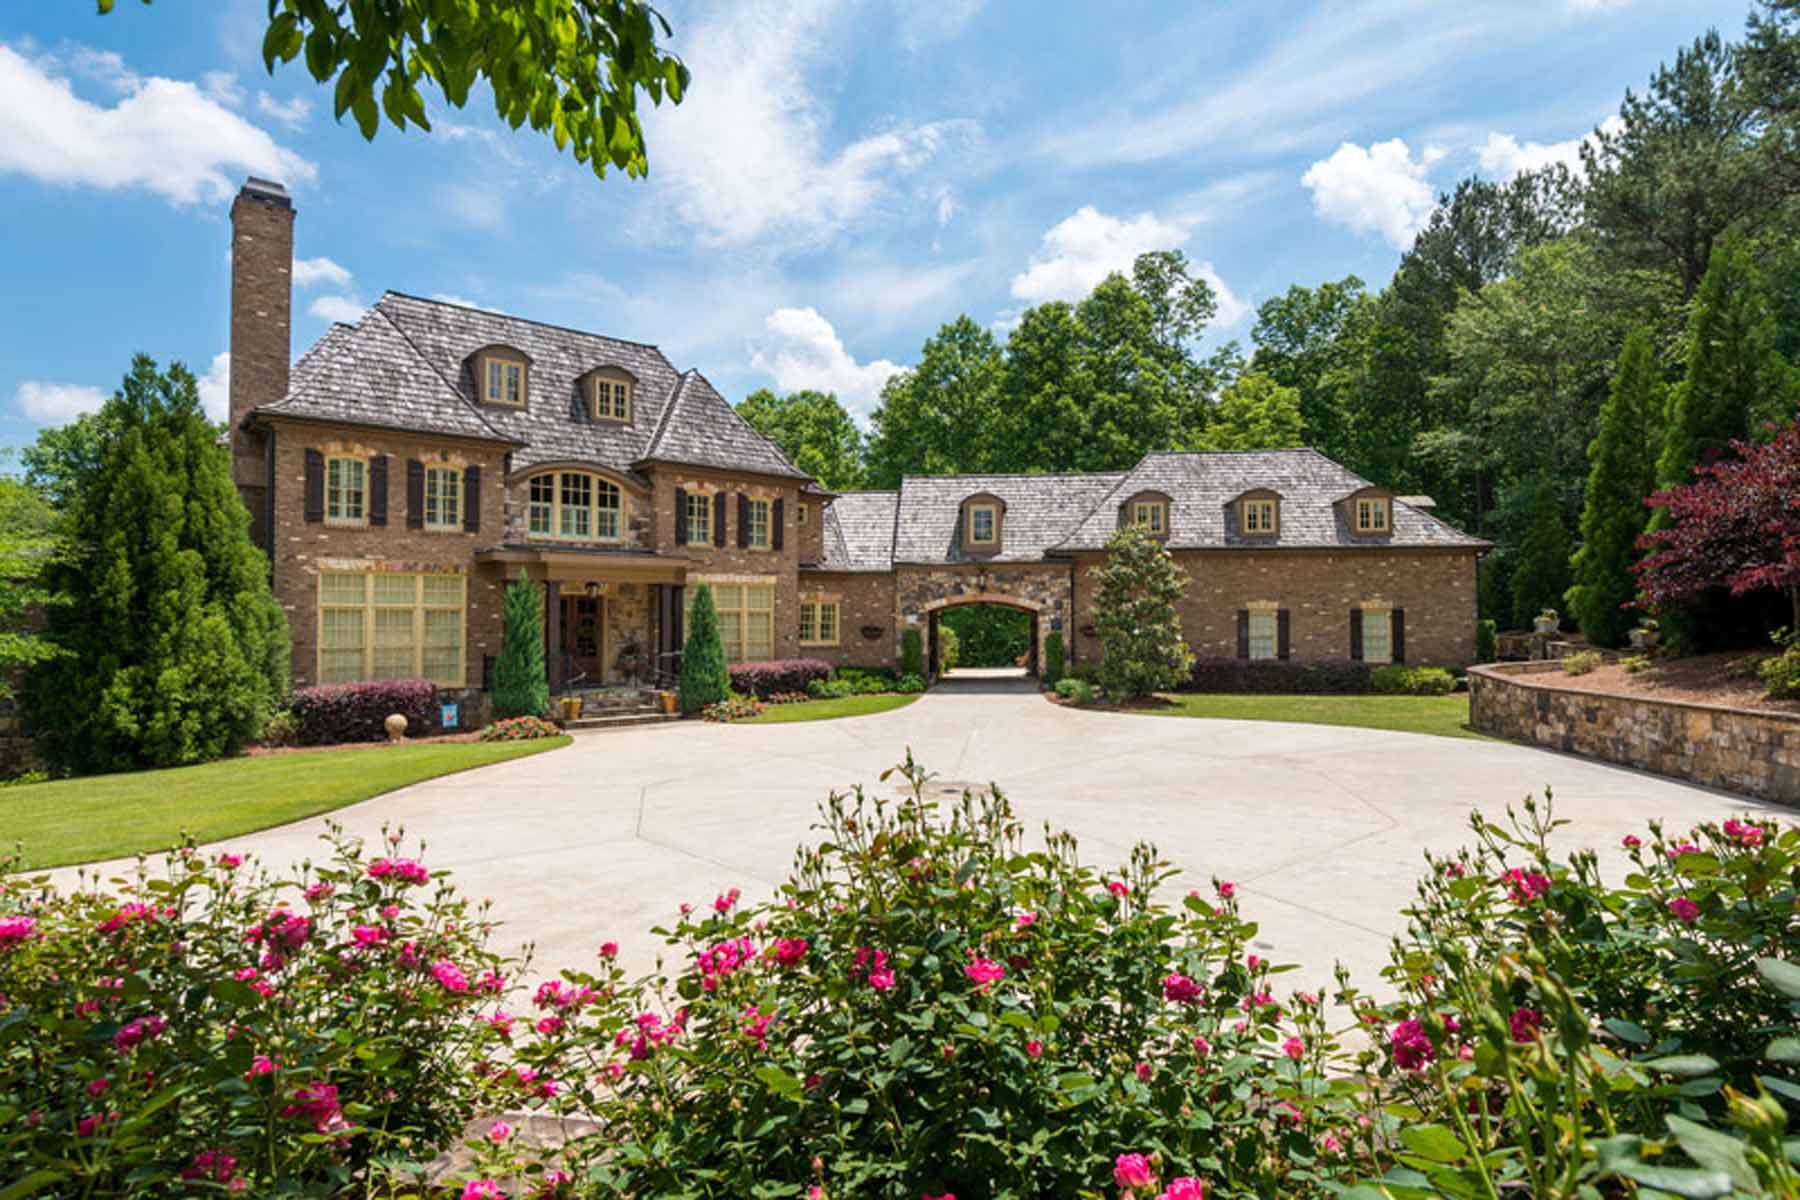 Single Family Home for Active at Luxurious Private Estate 200 Woodhaven Lane Ball Ground, Georgia 30107 United States